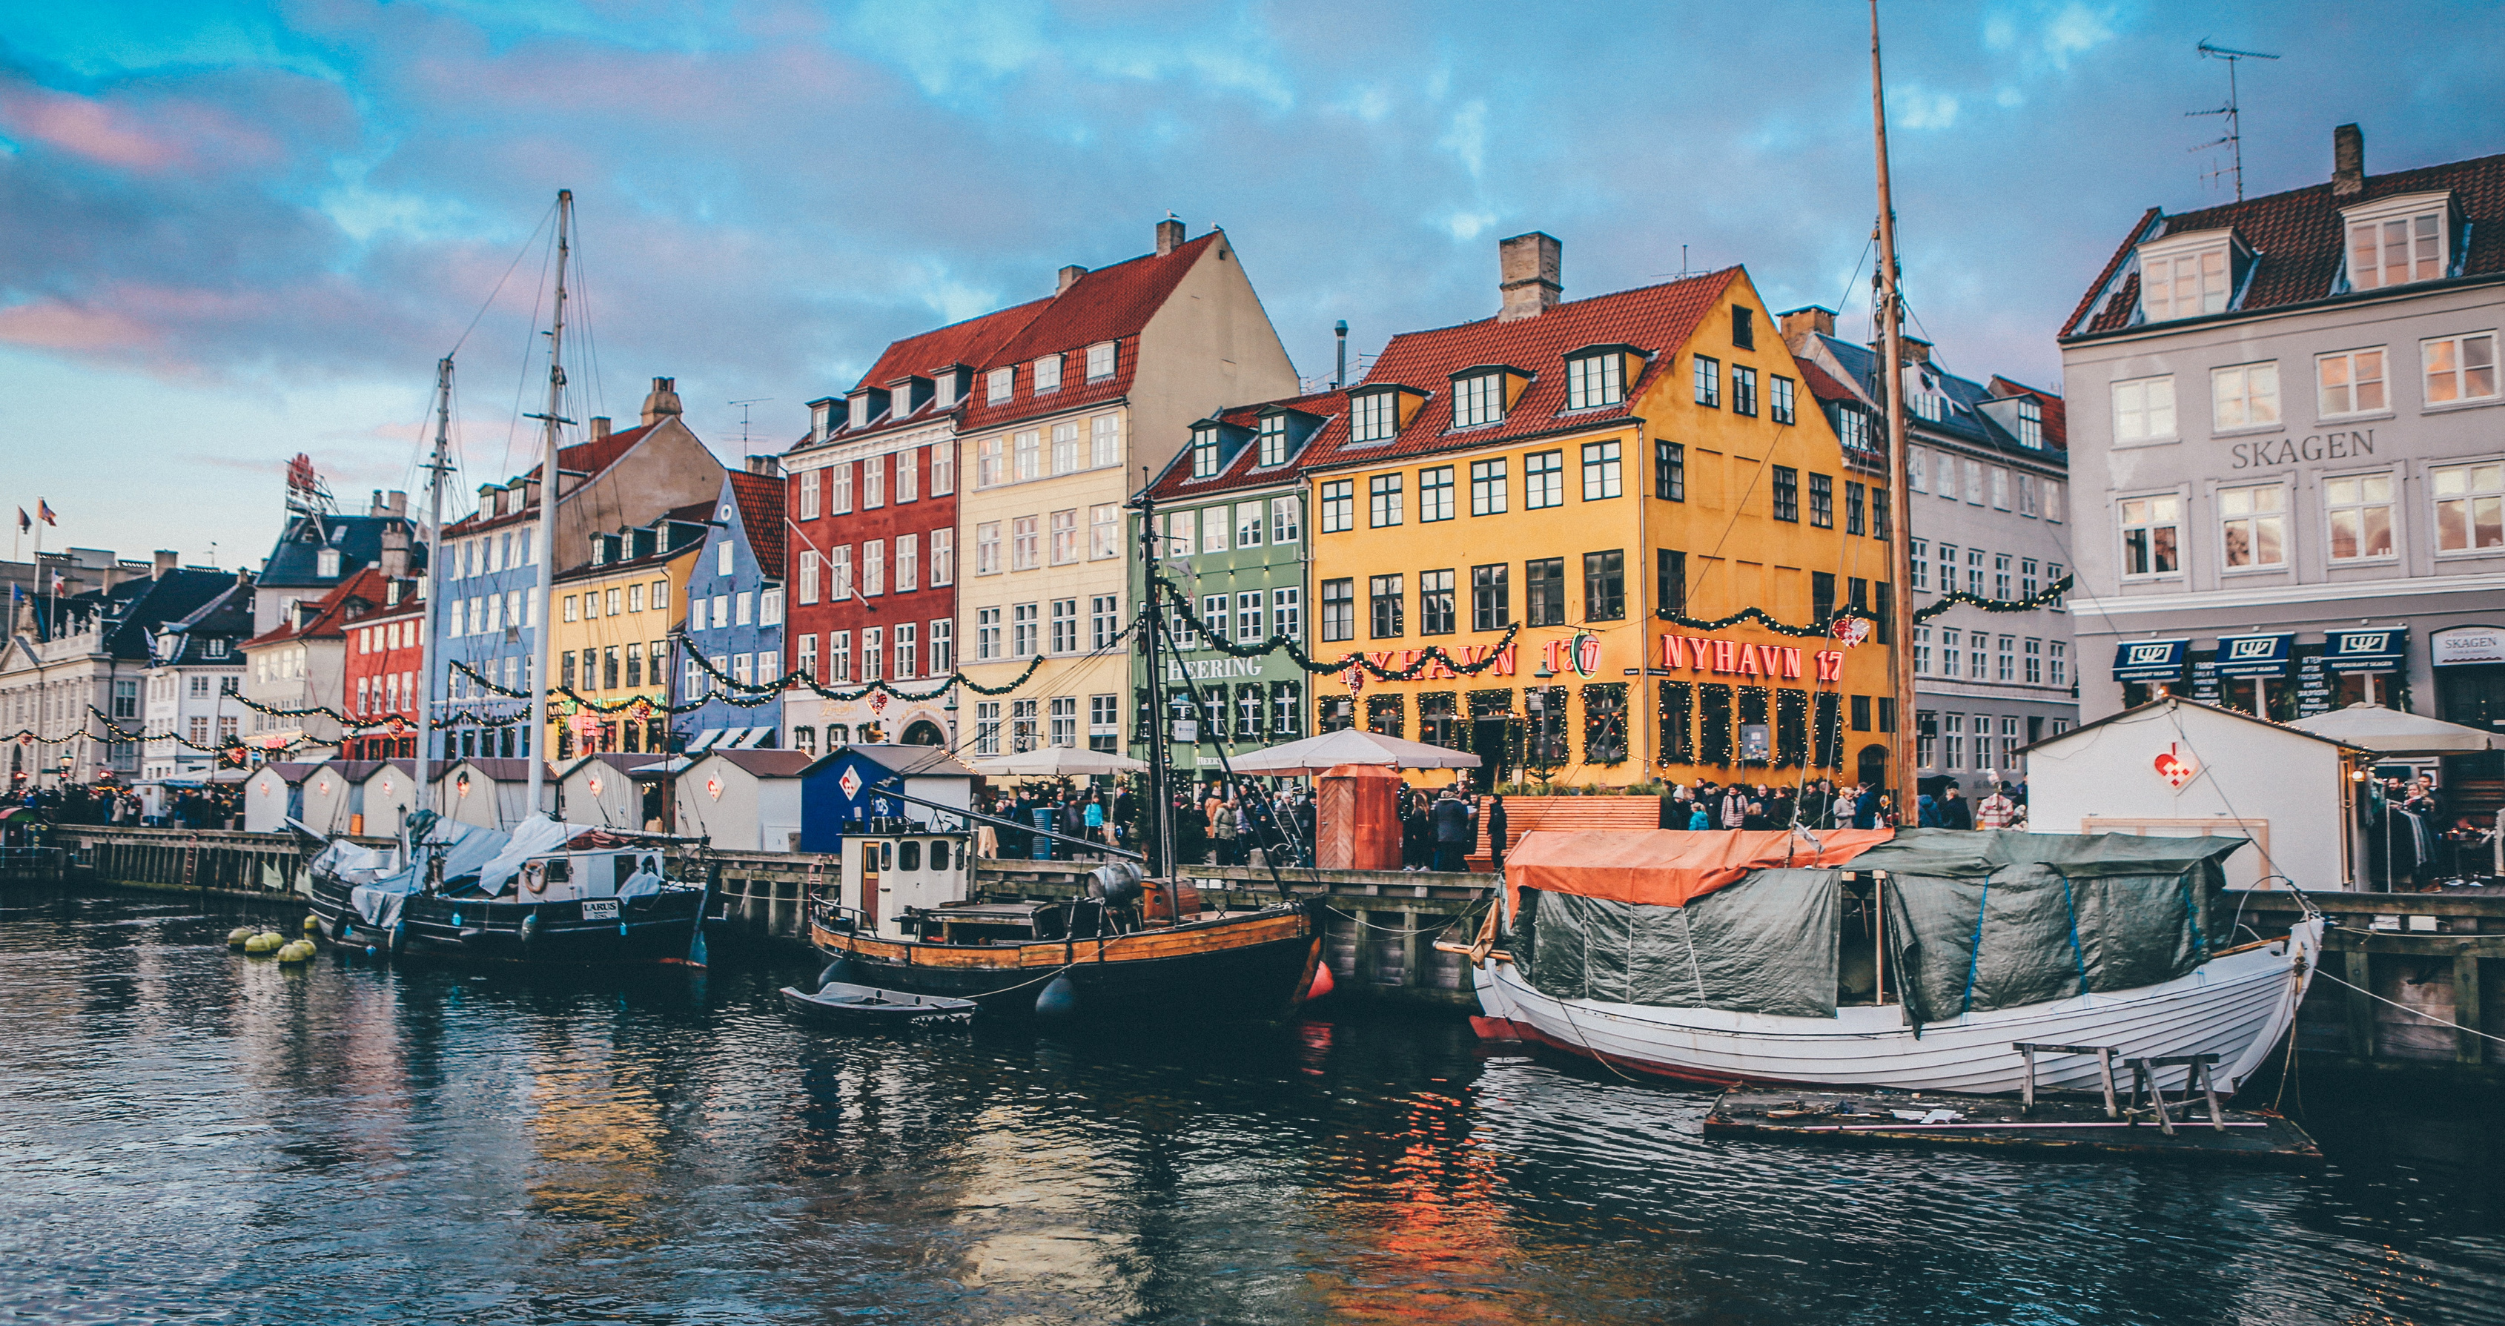 Buildings and boats line a channel in Copenhagen